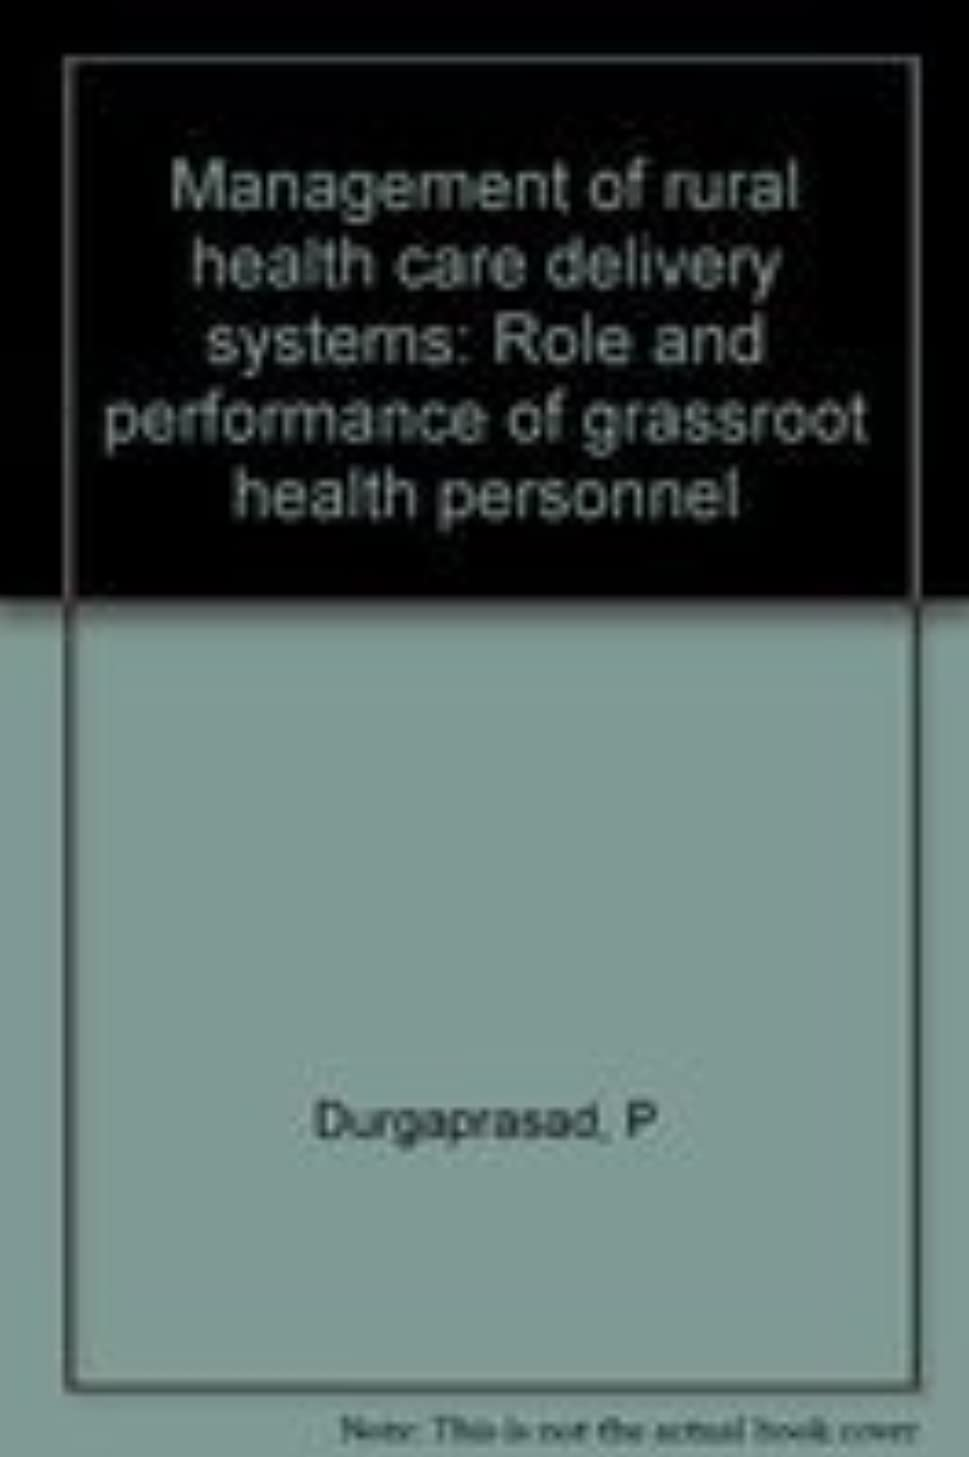 Management of rural health care delivery systems: Role and performance of grassroot health personnel